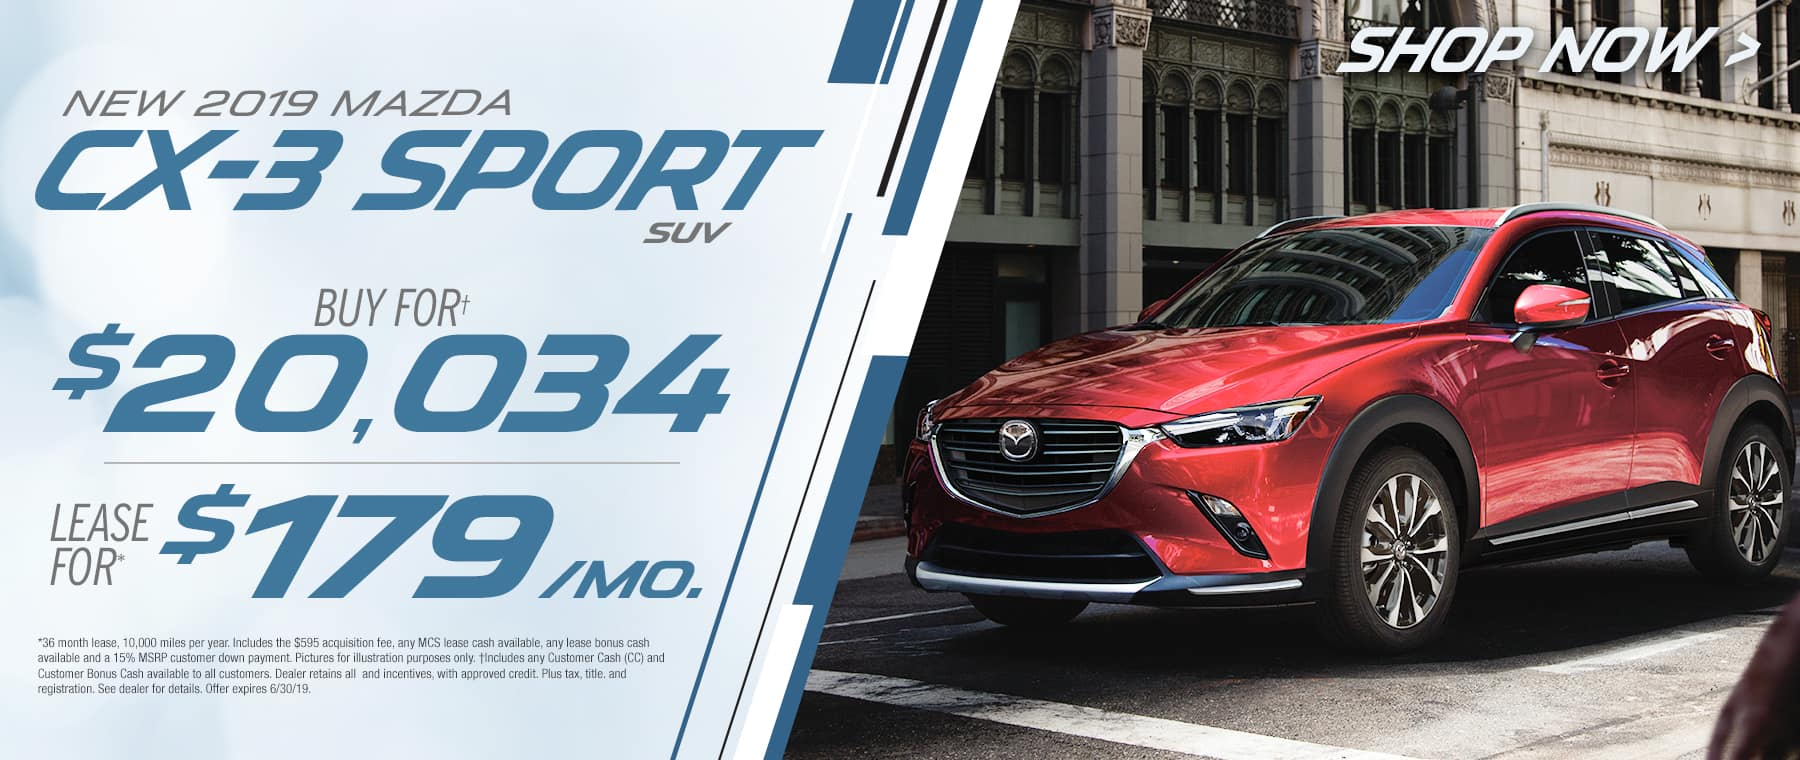 2019 Mazda CX-3$179 Per Month OR Buy For $20034